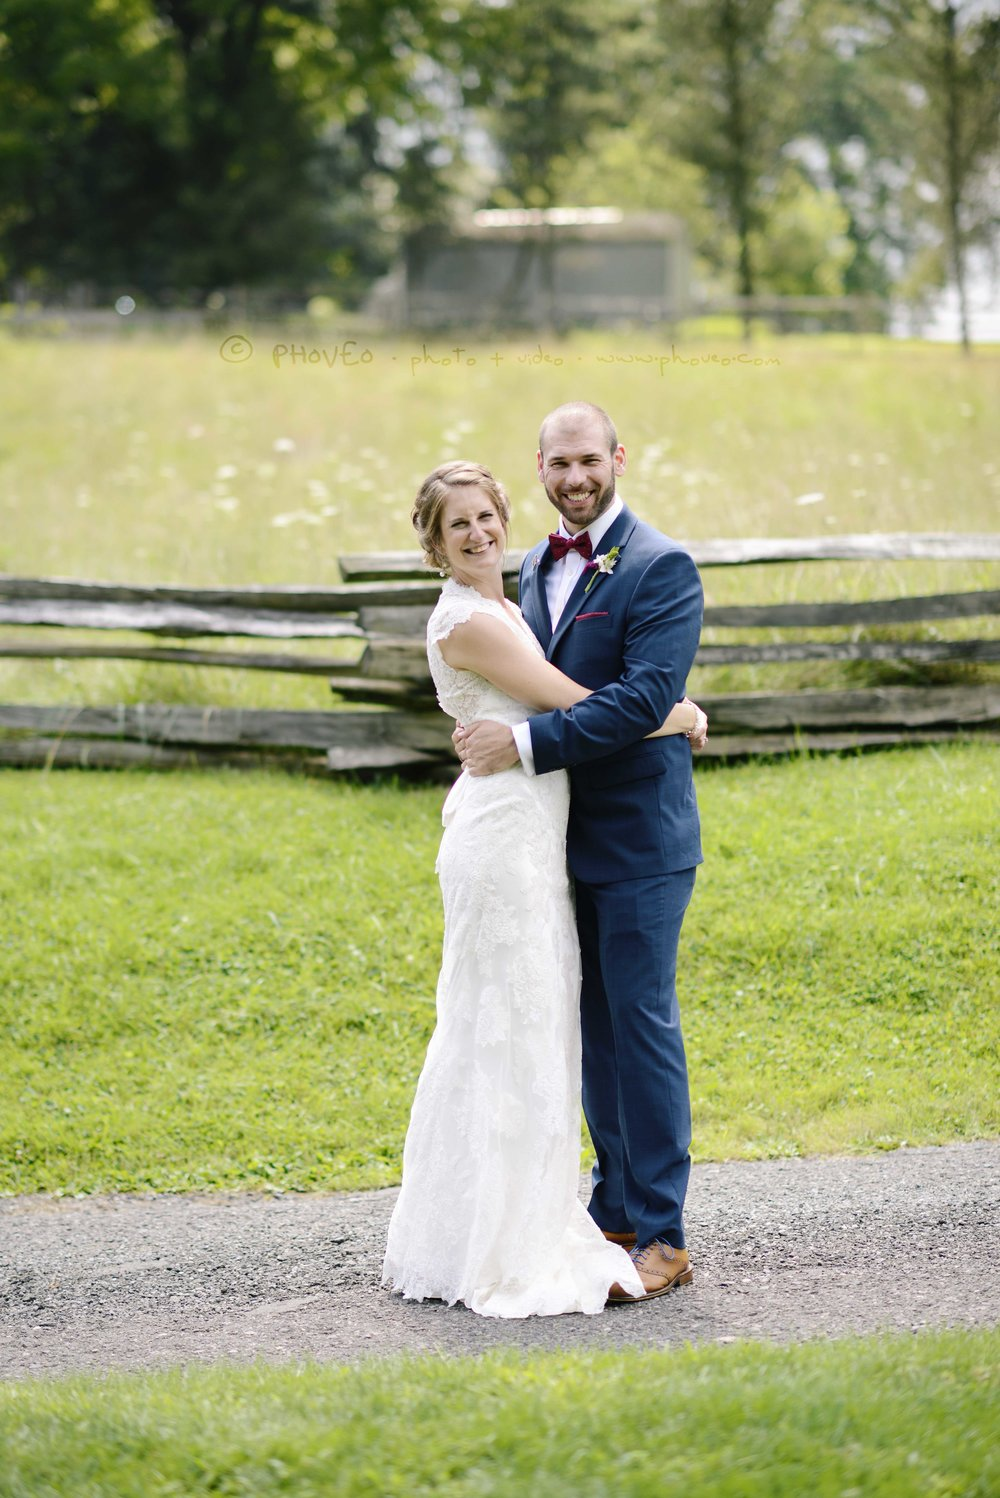 WM_20170812_Lauren+Sean_113.jpg